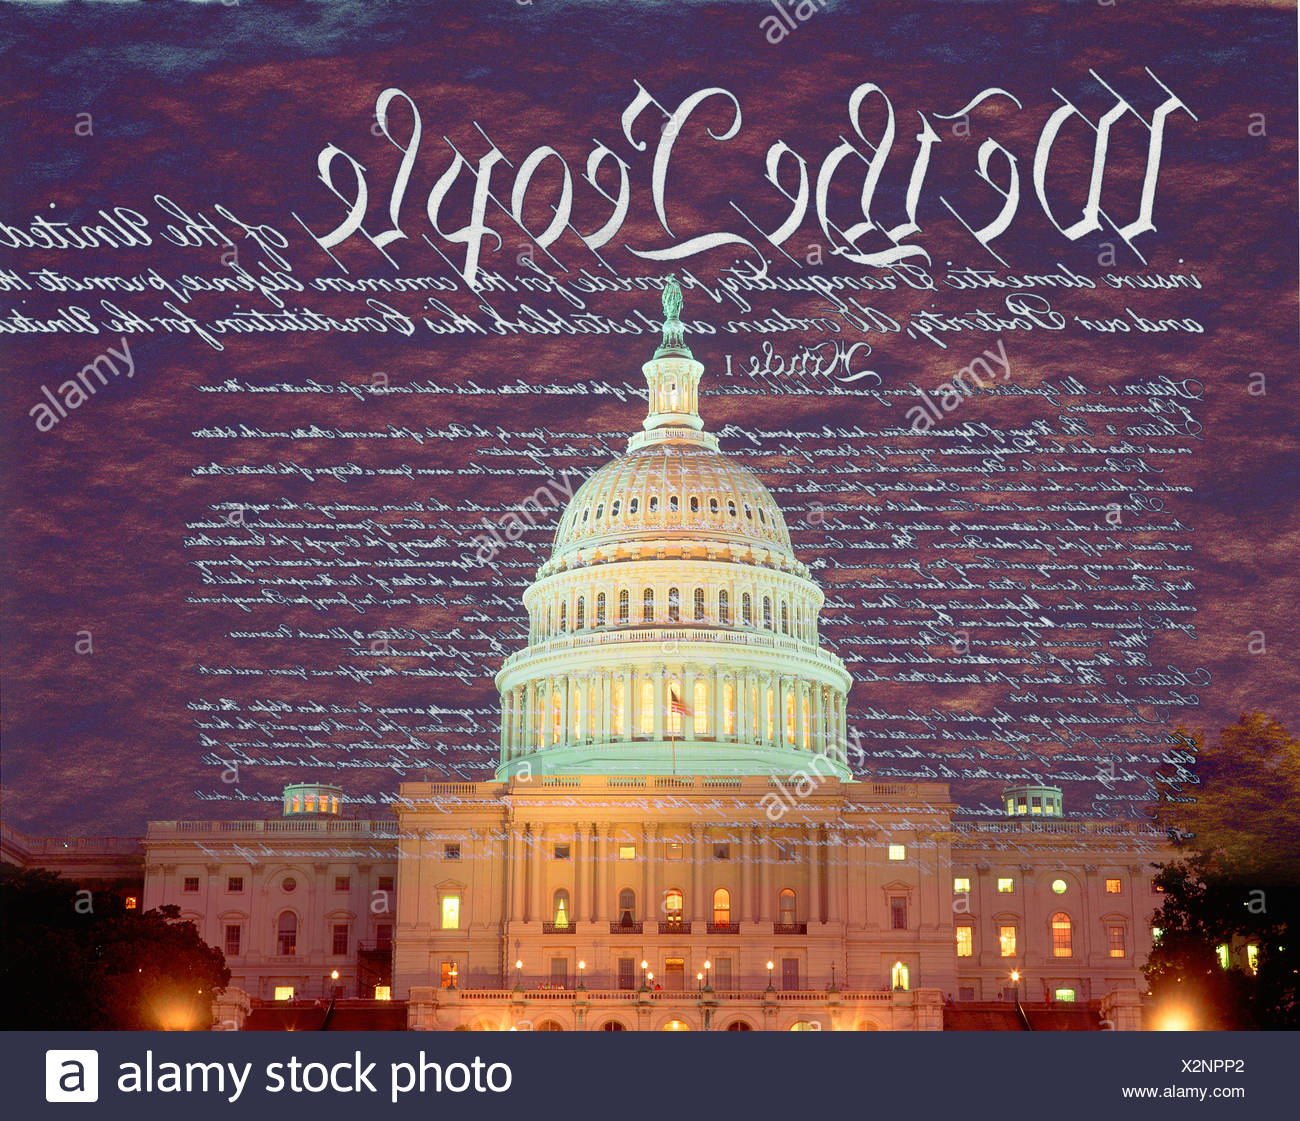 Composite image of the U.S. Capitol and the U.S. Constitution - Stock Image